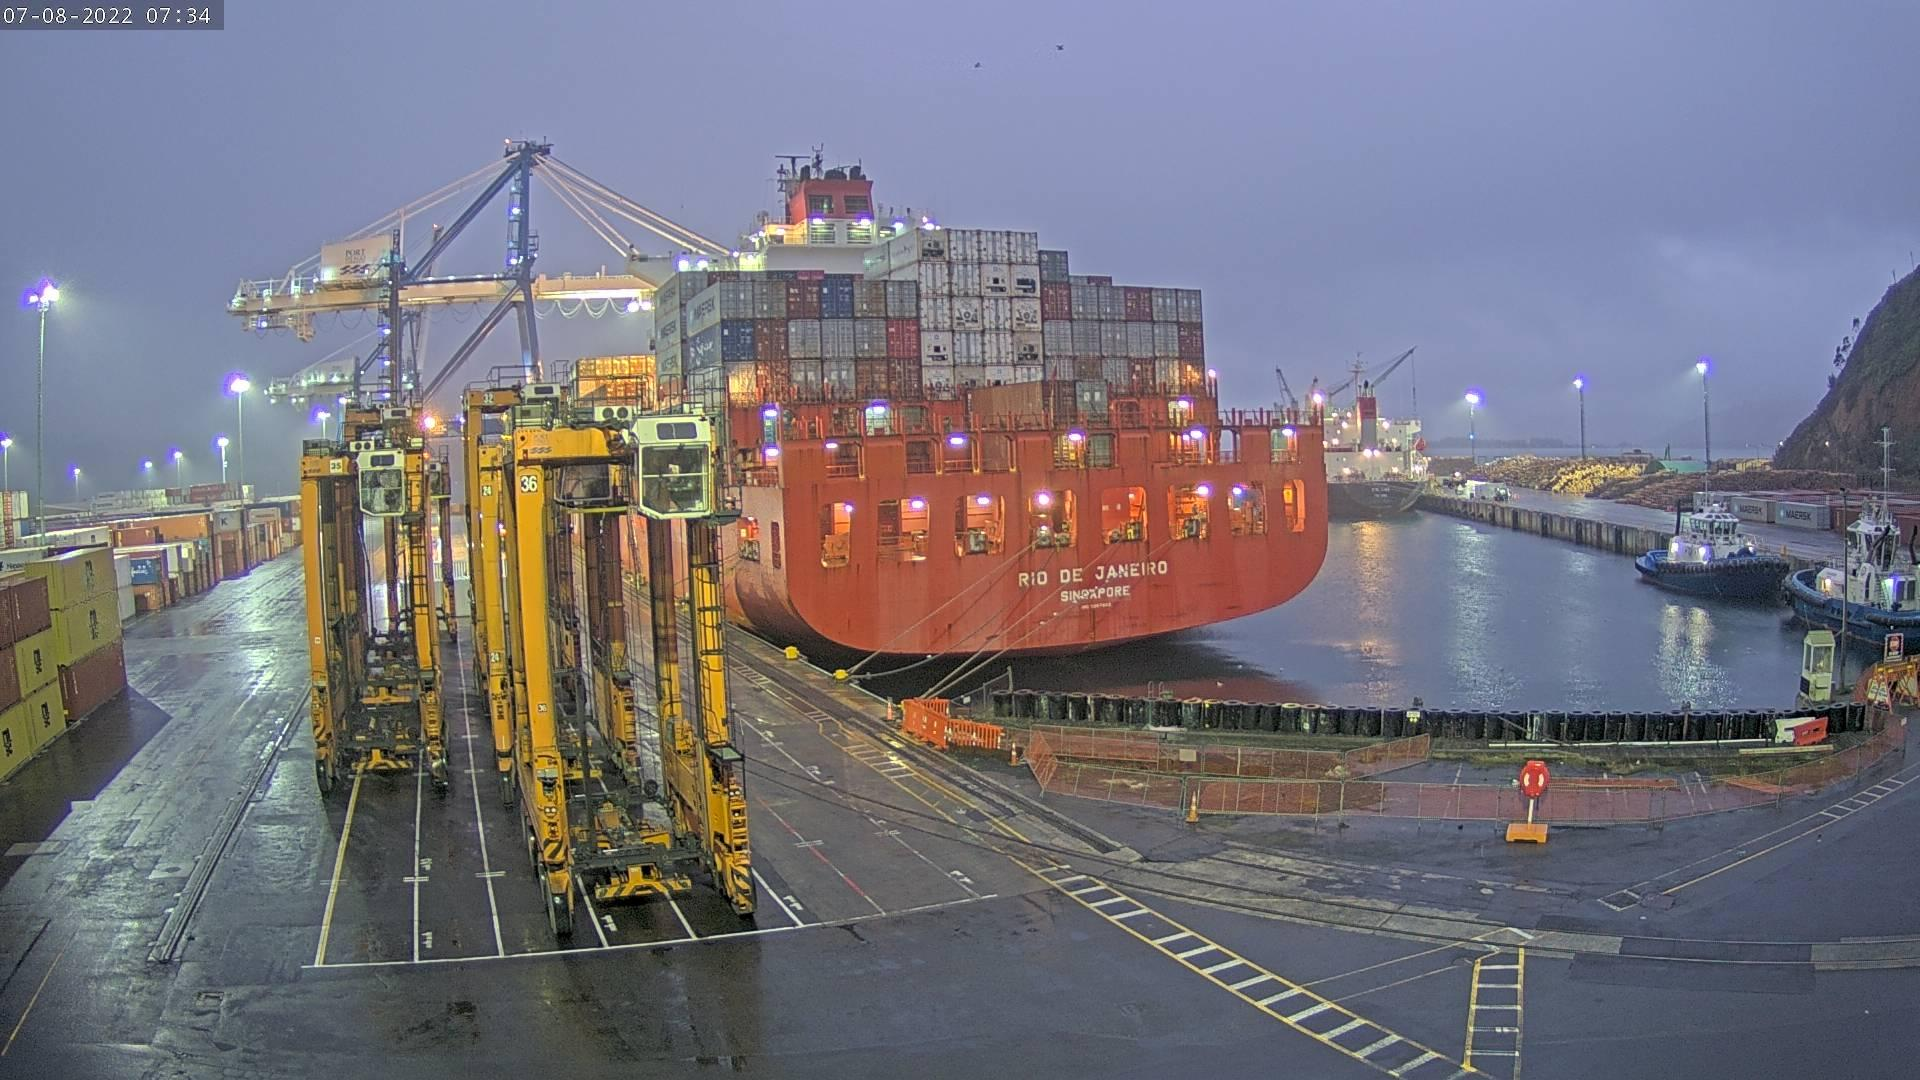 Webkamera Port Chalmers › North-East: Main Container Whalf